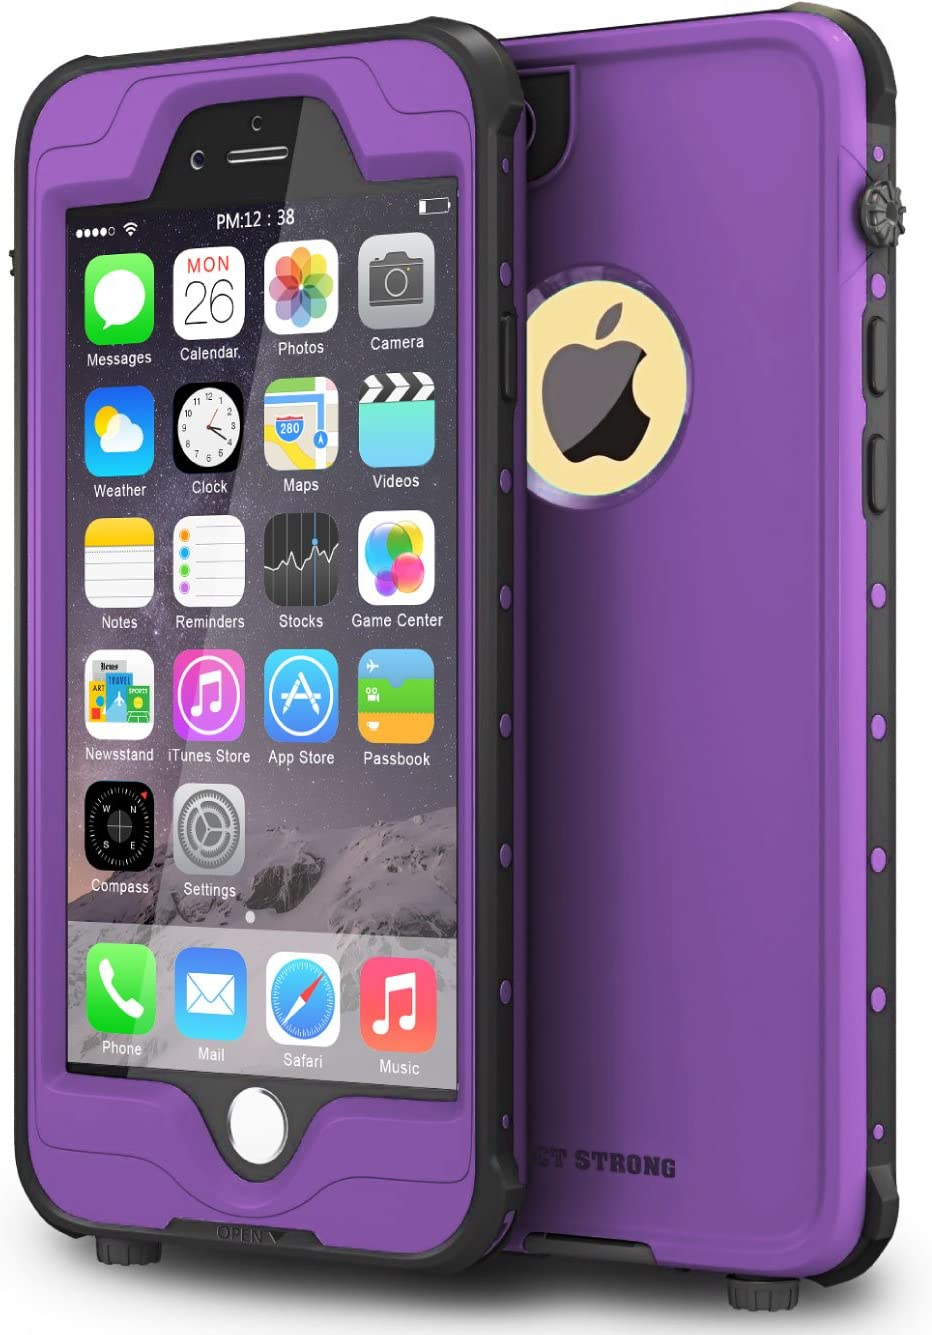 "ImpactStrong iPhone 6 Plus 5.5 inch Waterproof Case [Fingerprint ID Compatible] Slim Full Body Protection for Apple iPhone 6 Plus & 6s Plus (5.5"") - Purple"